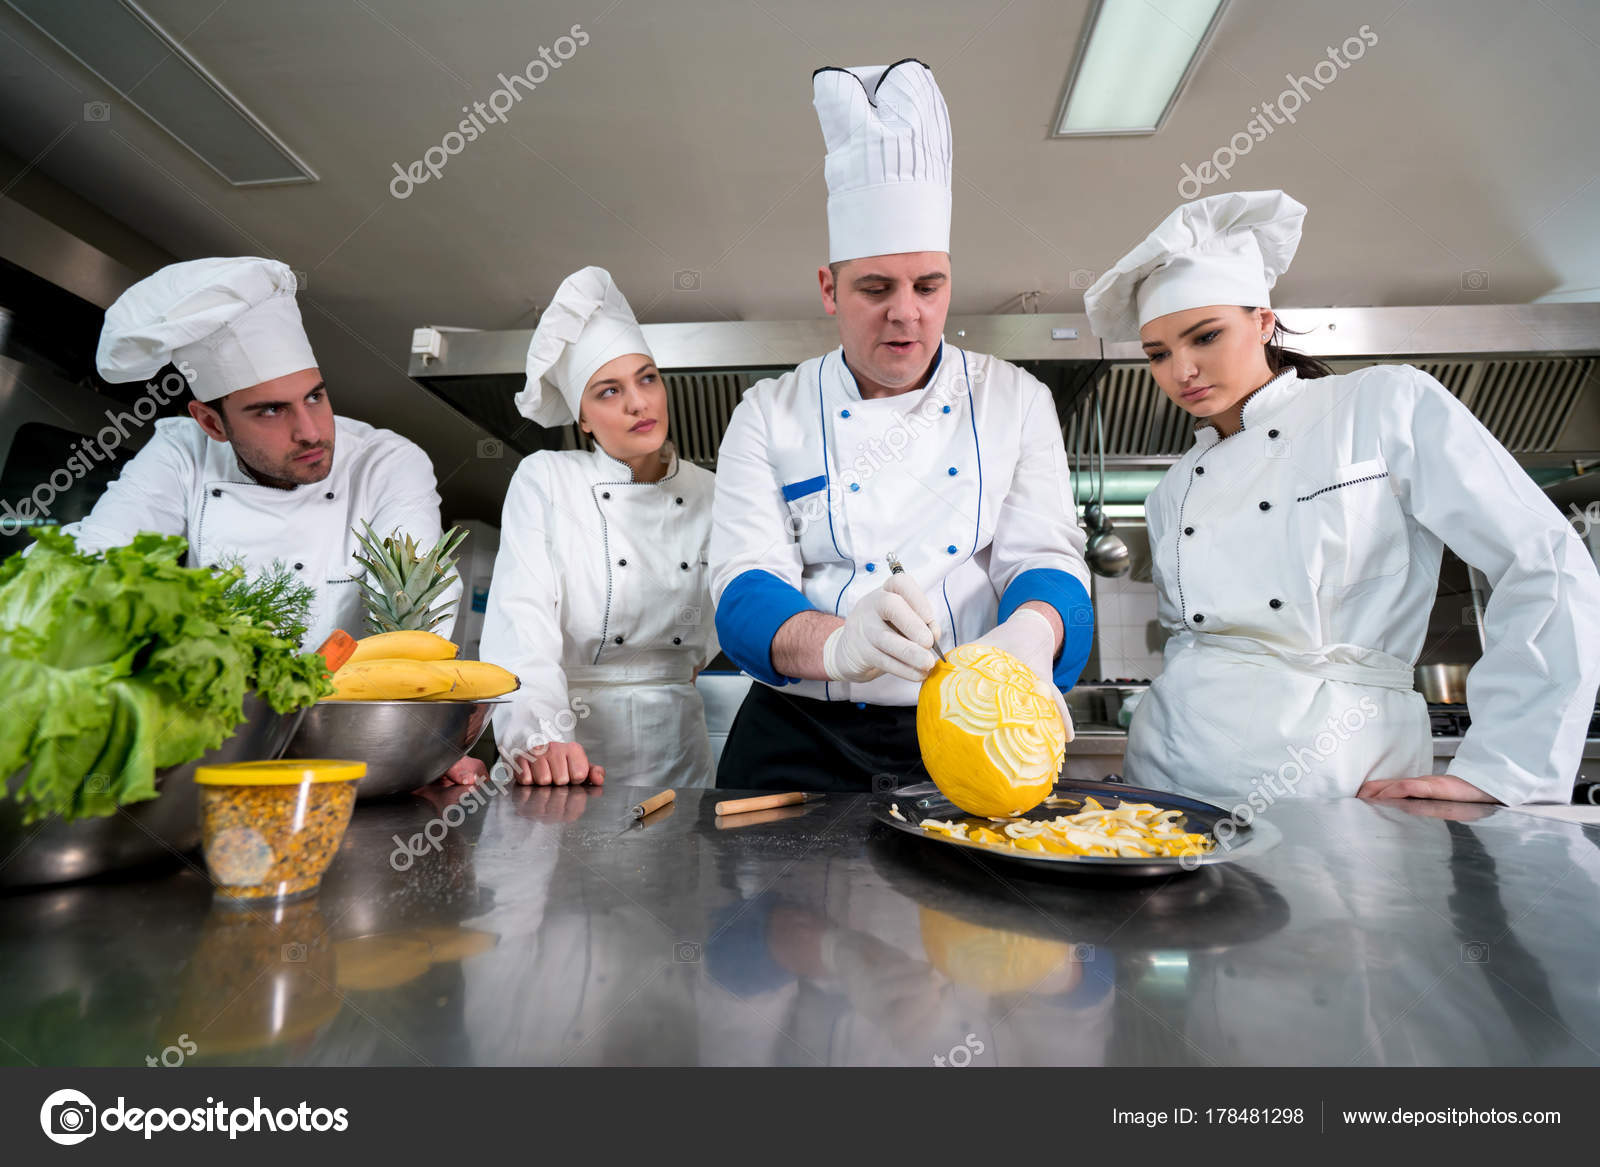 Kitchen chef young apprentices teaching make decorative fruit basket stock photo